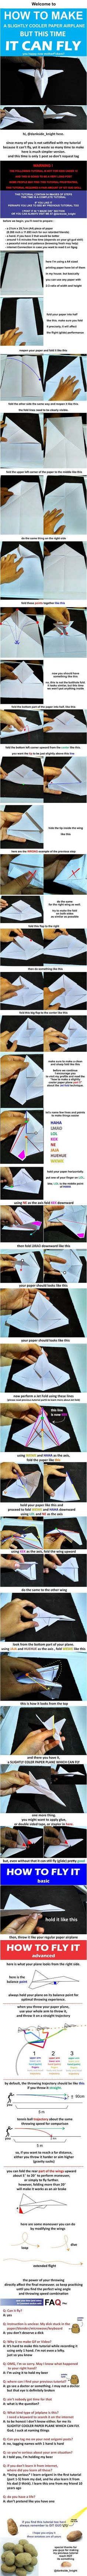 I heard you like a paper plane that can actually fly - DIY paper & origami ideas